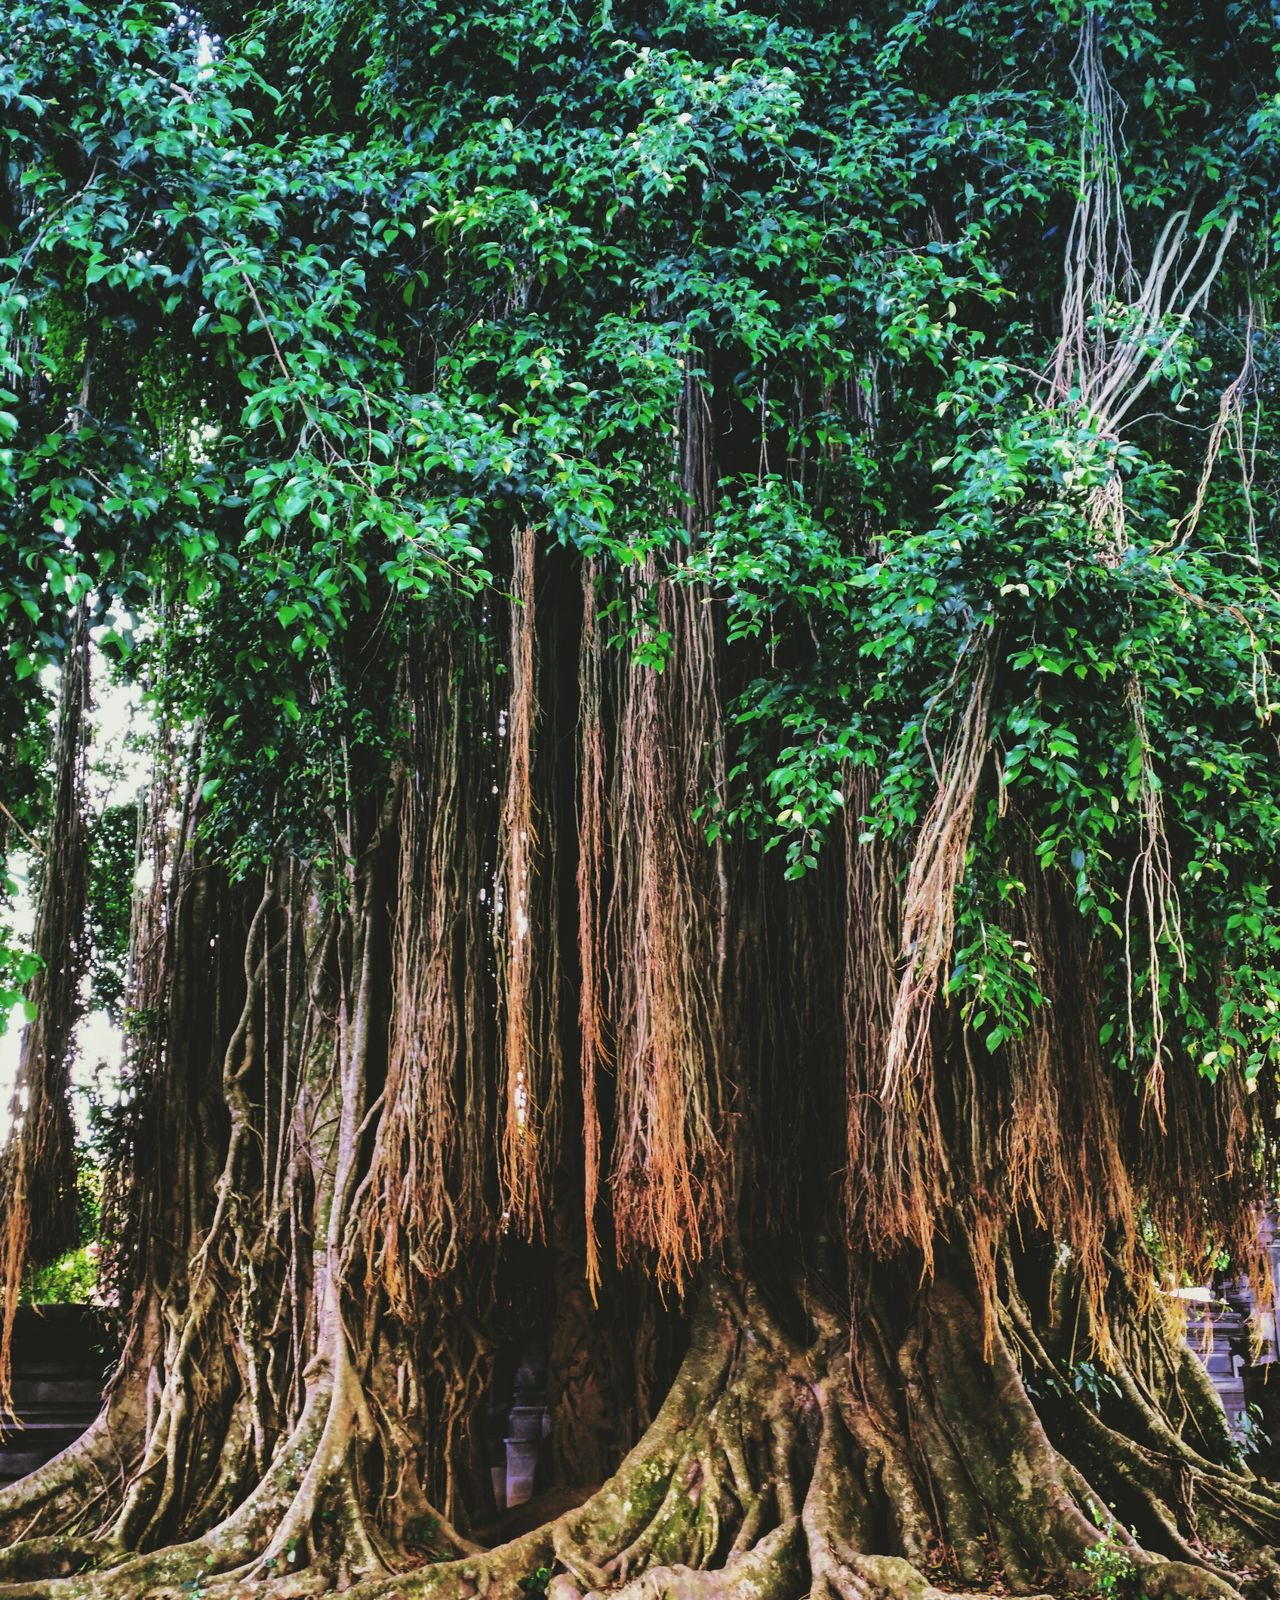 Tree Nature Green Color No People Beauty In Nature Outdoors Banyan Banyan Tree INDONESIA Roots Dreadlocks♥ TreePorn Holiday Throwbackthursday